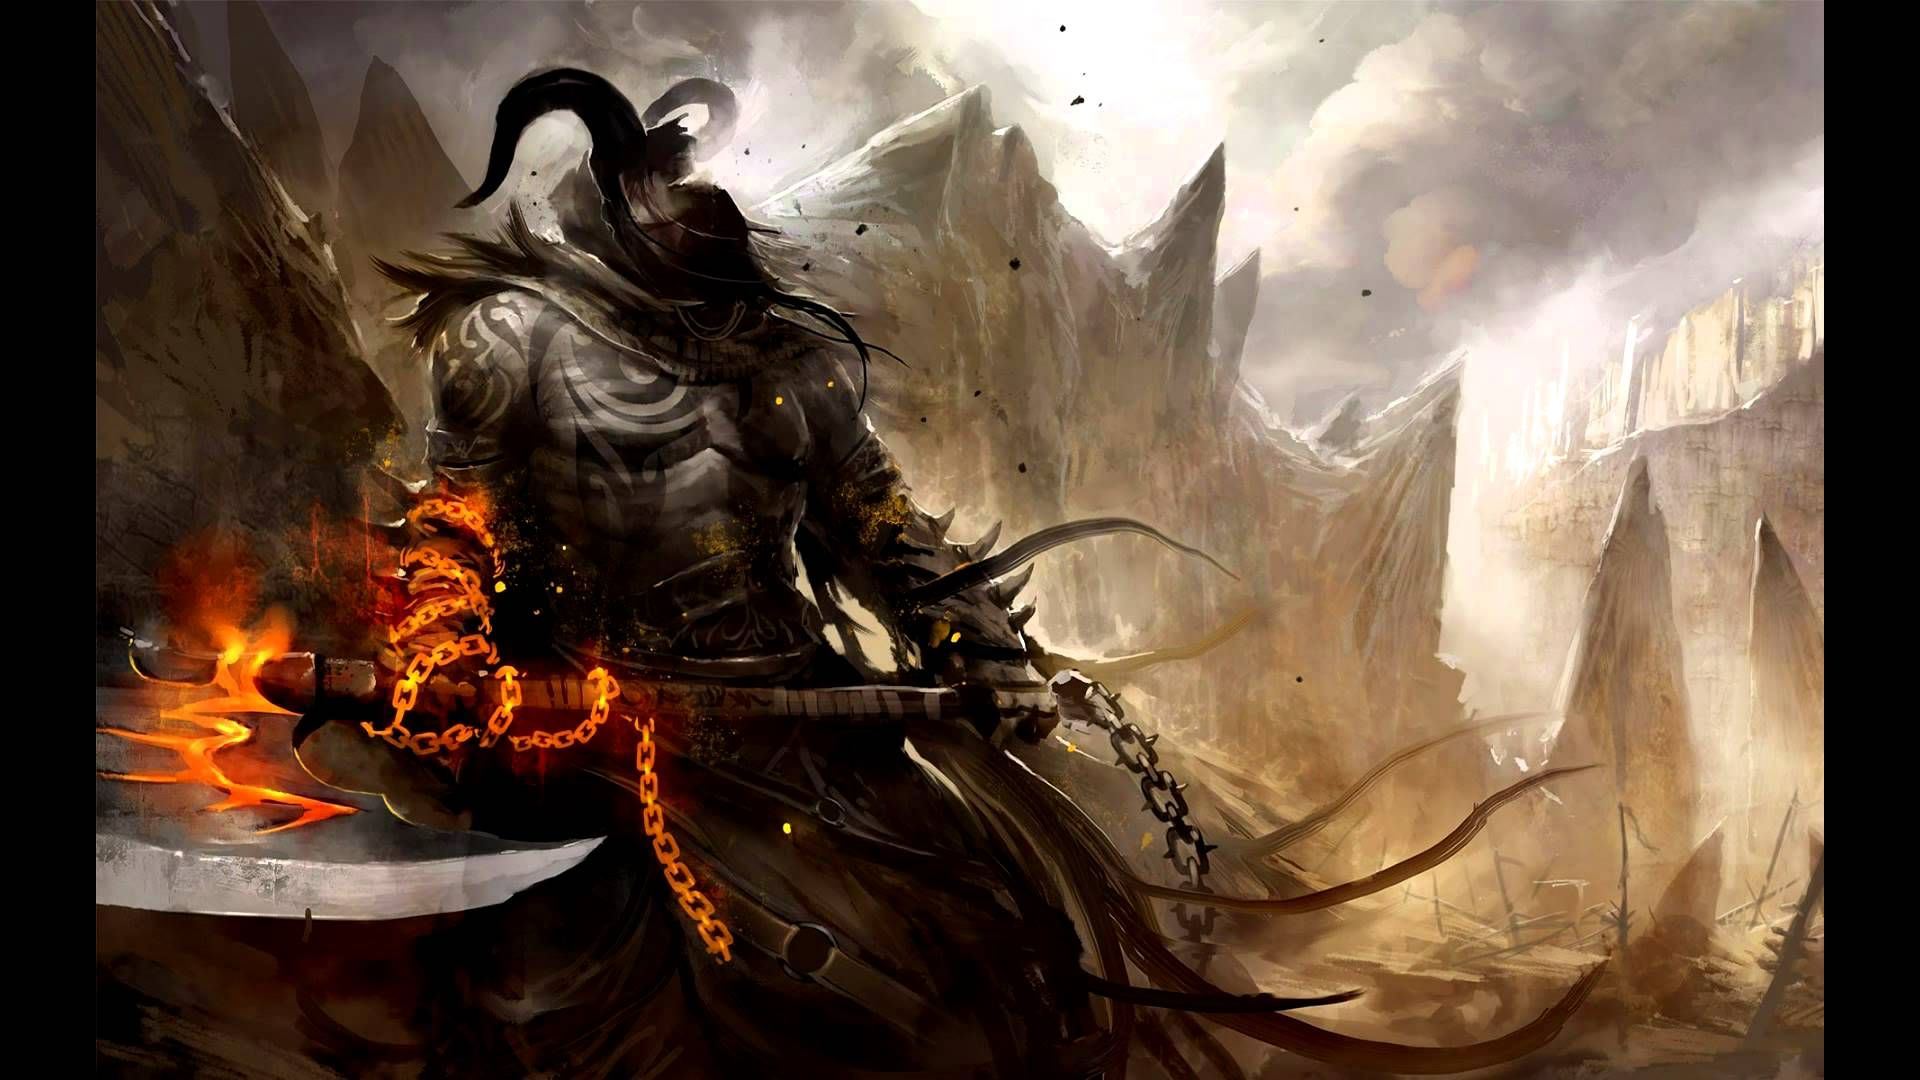 Find The Best Demonic Wallpaper On WallpaperTag We Have A Massive Amount Of Desktop And Mobile Backgrounds